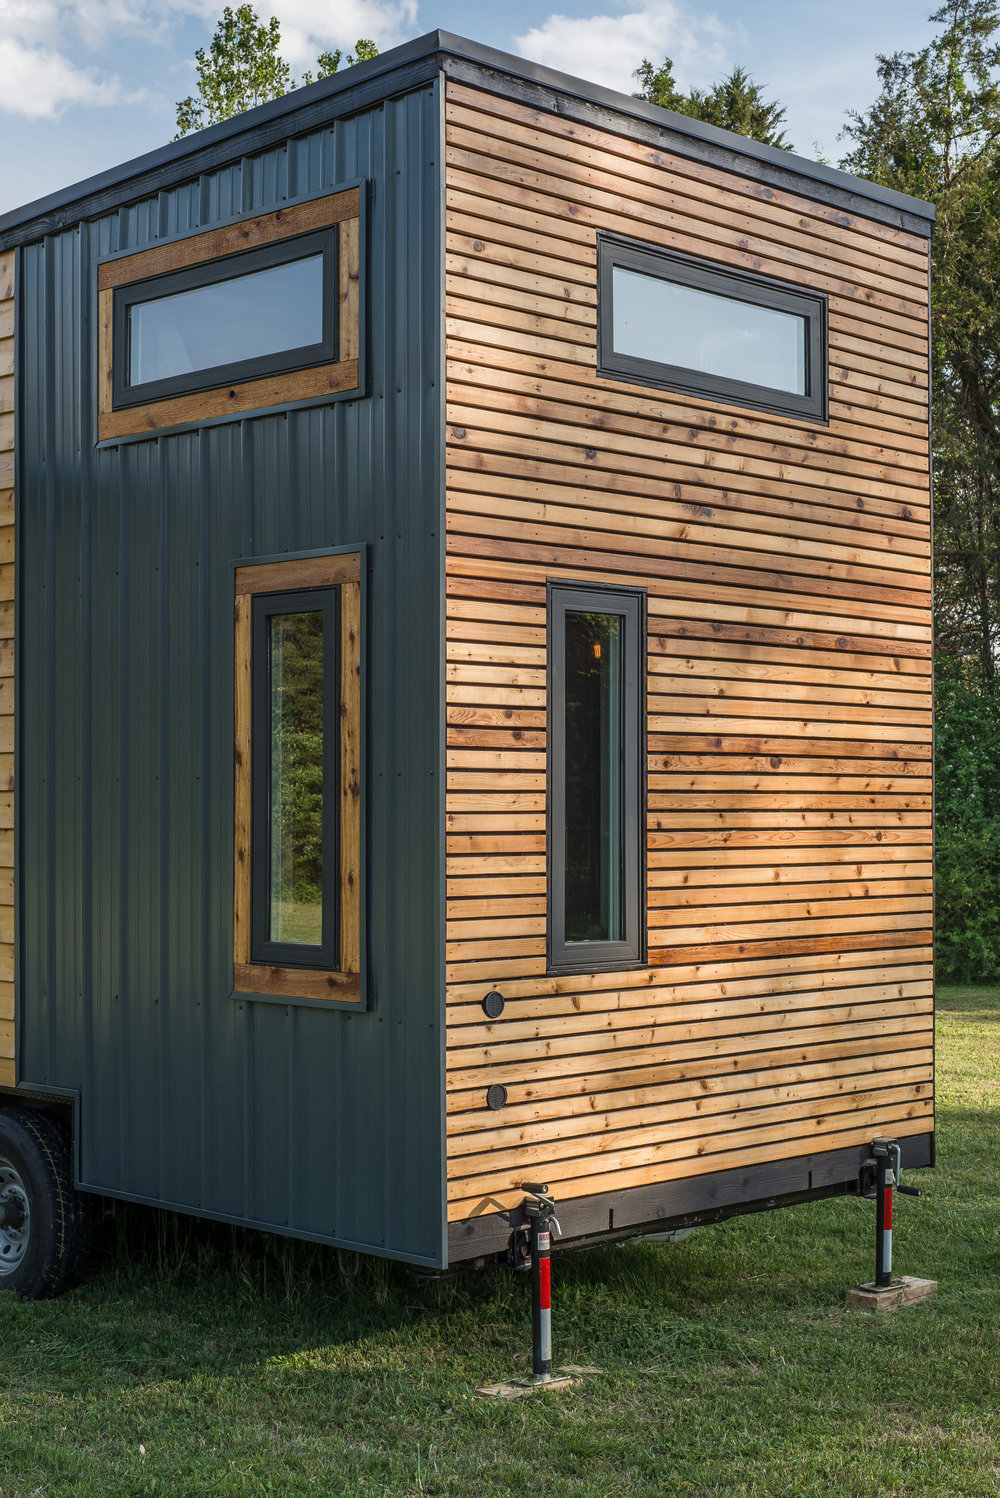 escher tiny house new frontier tiny homes. Black Bedroom Furniture Sets. Home Design Ideas